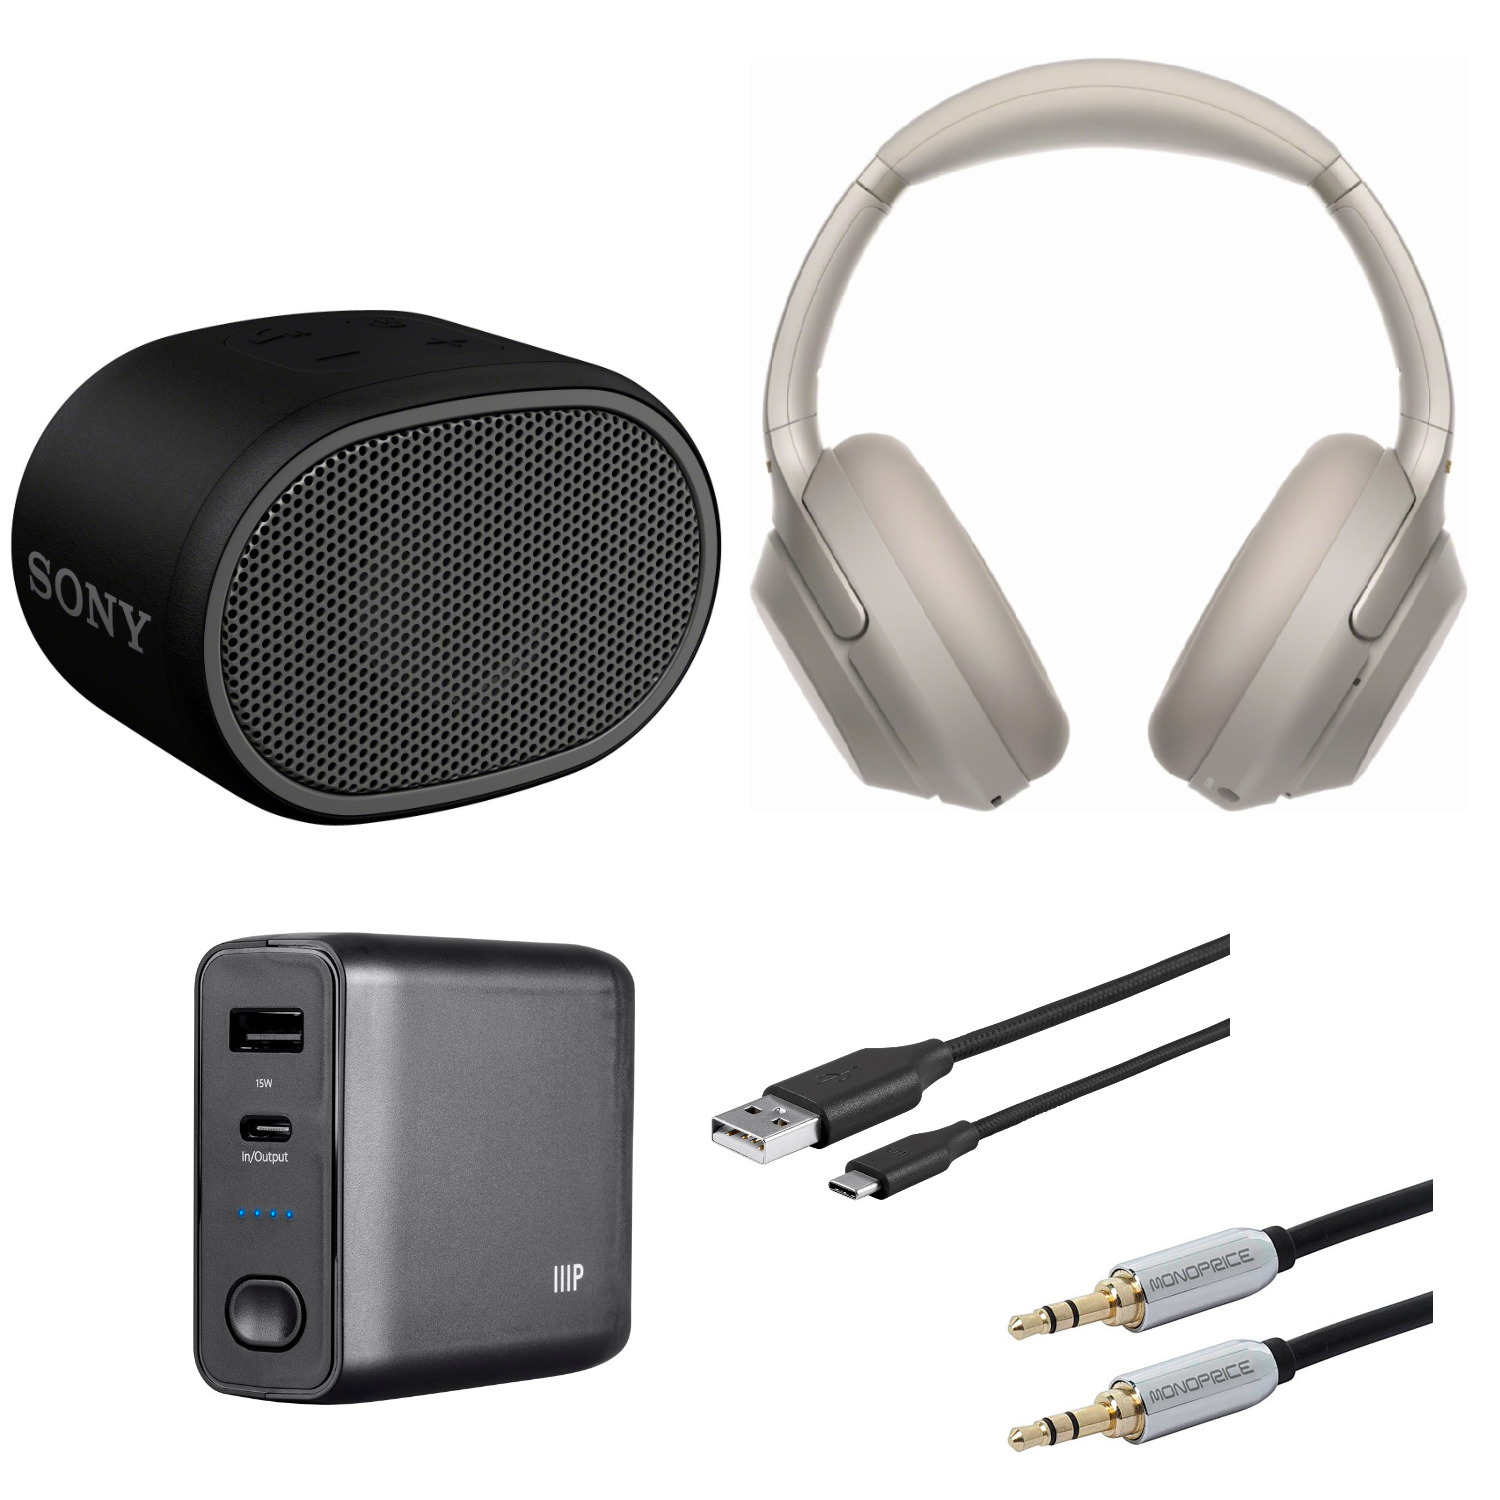 Sony WH1000XM3 Wireless Noise-Canceling Headphones (Silver) Bundle